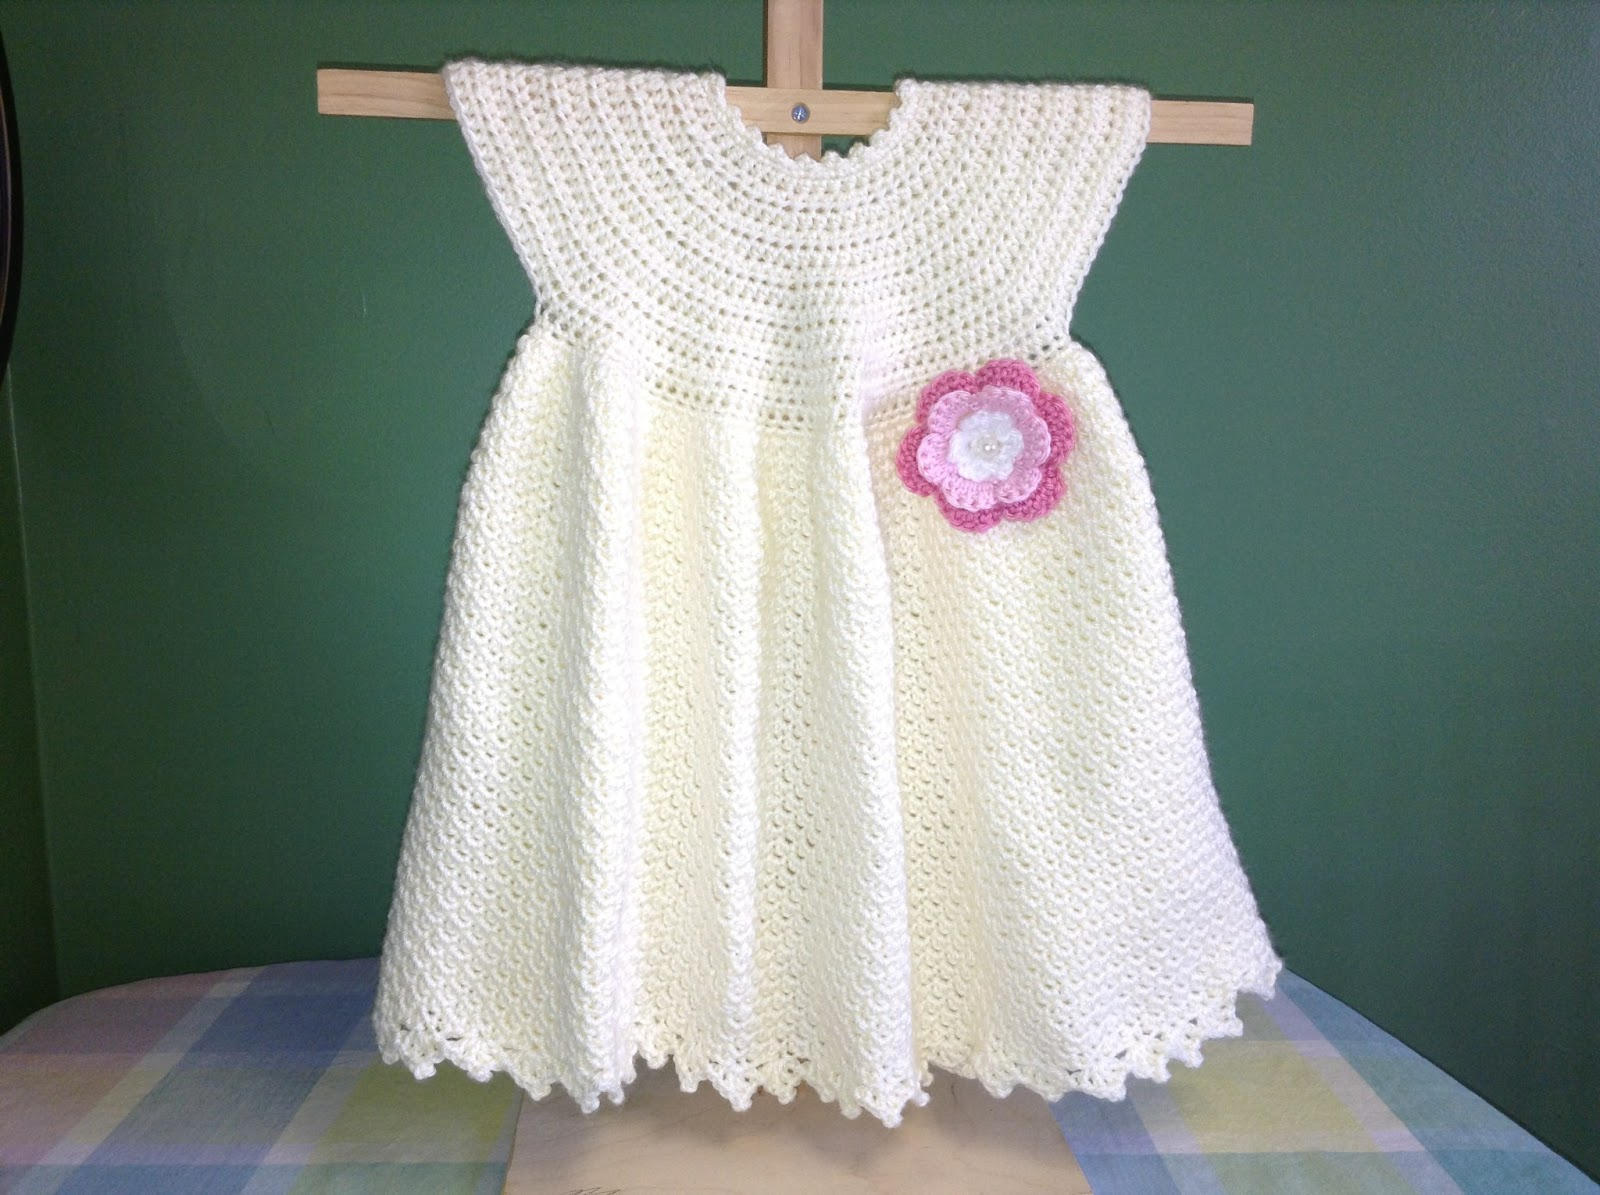 Free Crochet Dress Patterns For Beginners : Annas Free Baby Crochet Dress Patterns - Inspiration and ...